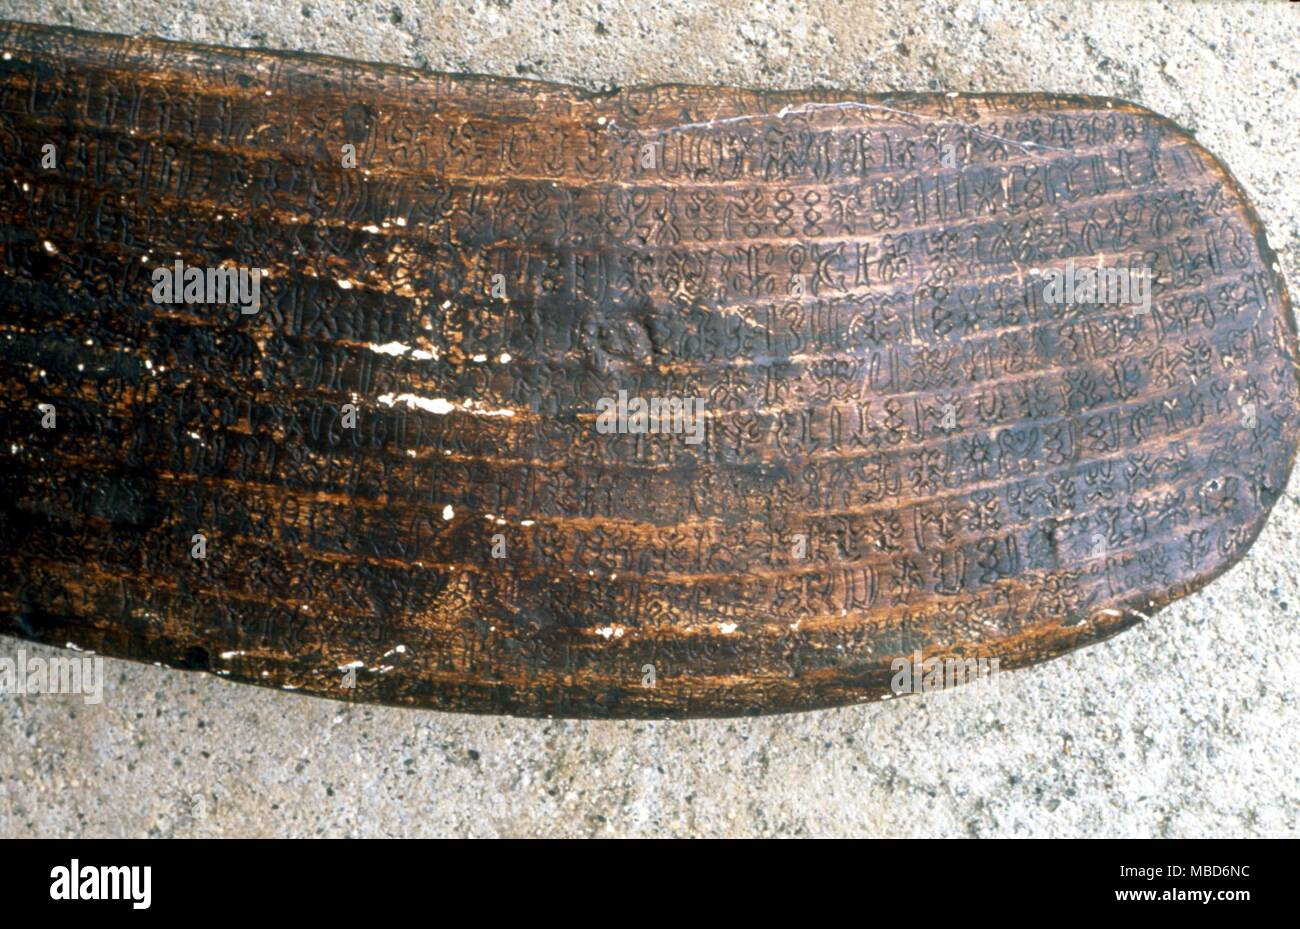 ALPHABETS - Example of the Easter Island ideographic script on the wooden tablets called Kohau Rongo Rongo ( news boards ).  The script was supposed to have been brought to the island by ship, circa 1100 AD, but was introduced a thousand years earlier. - Stock Image